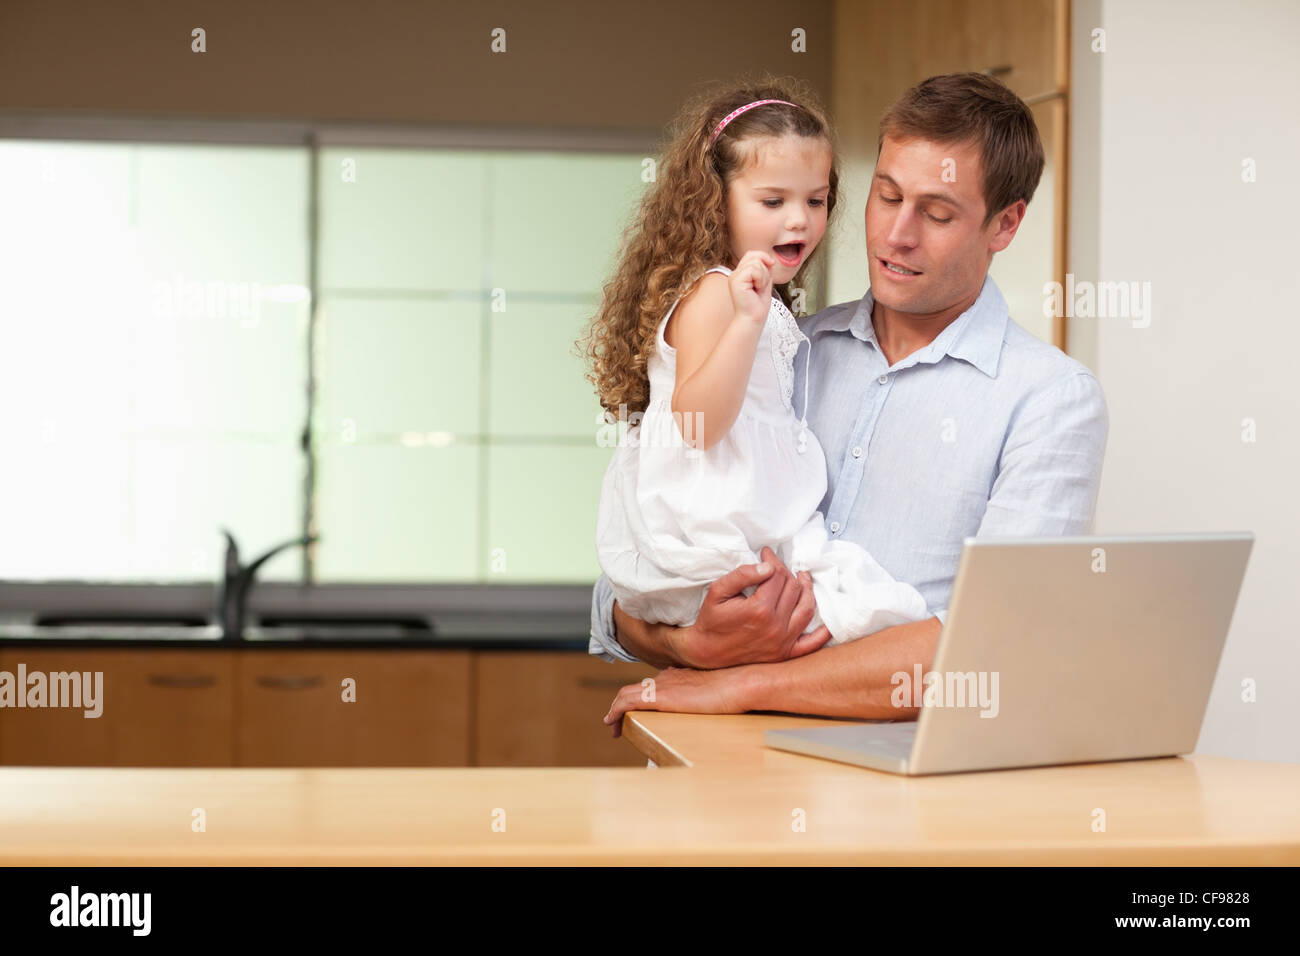 Girl is interested in her fathers laptop - Stock Image